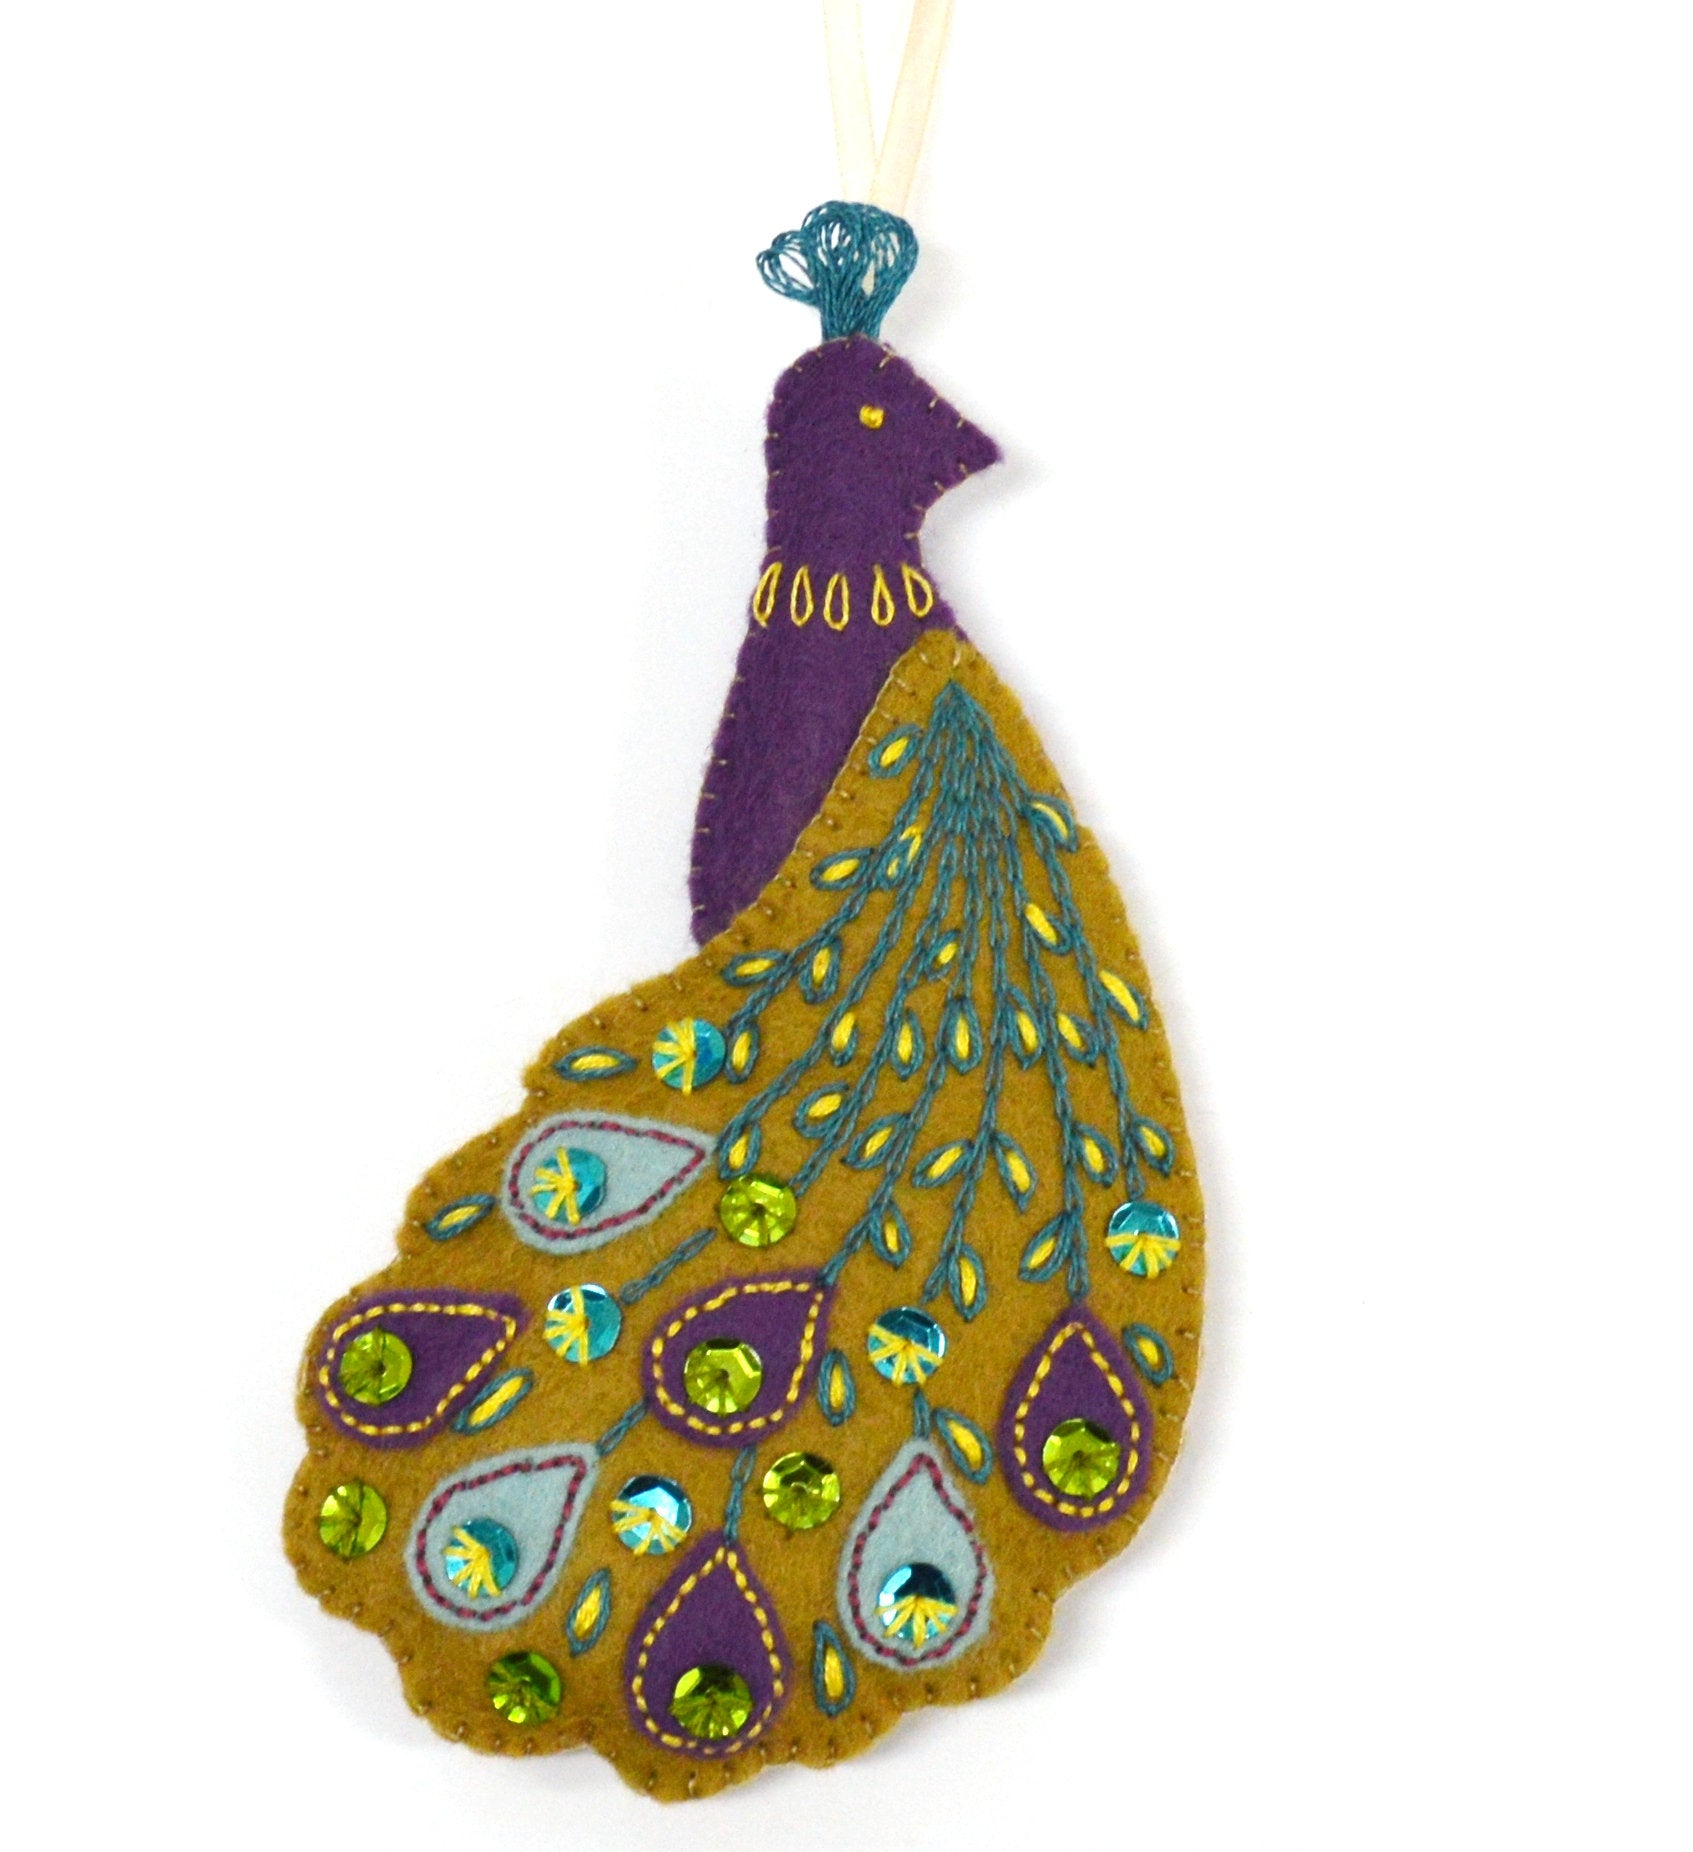 Corinne Lapierre Embroidery Sewing Kit - Peacock